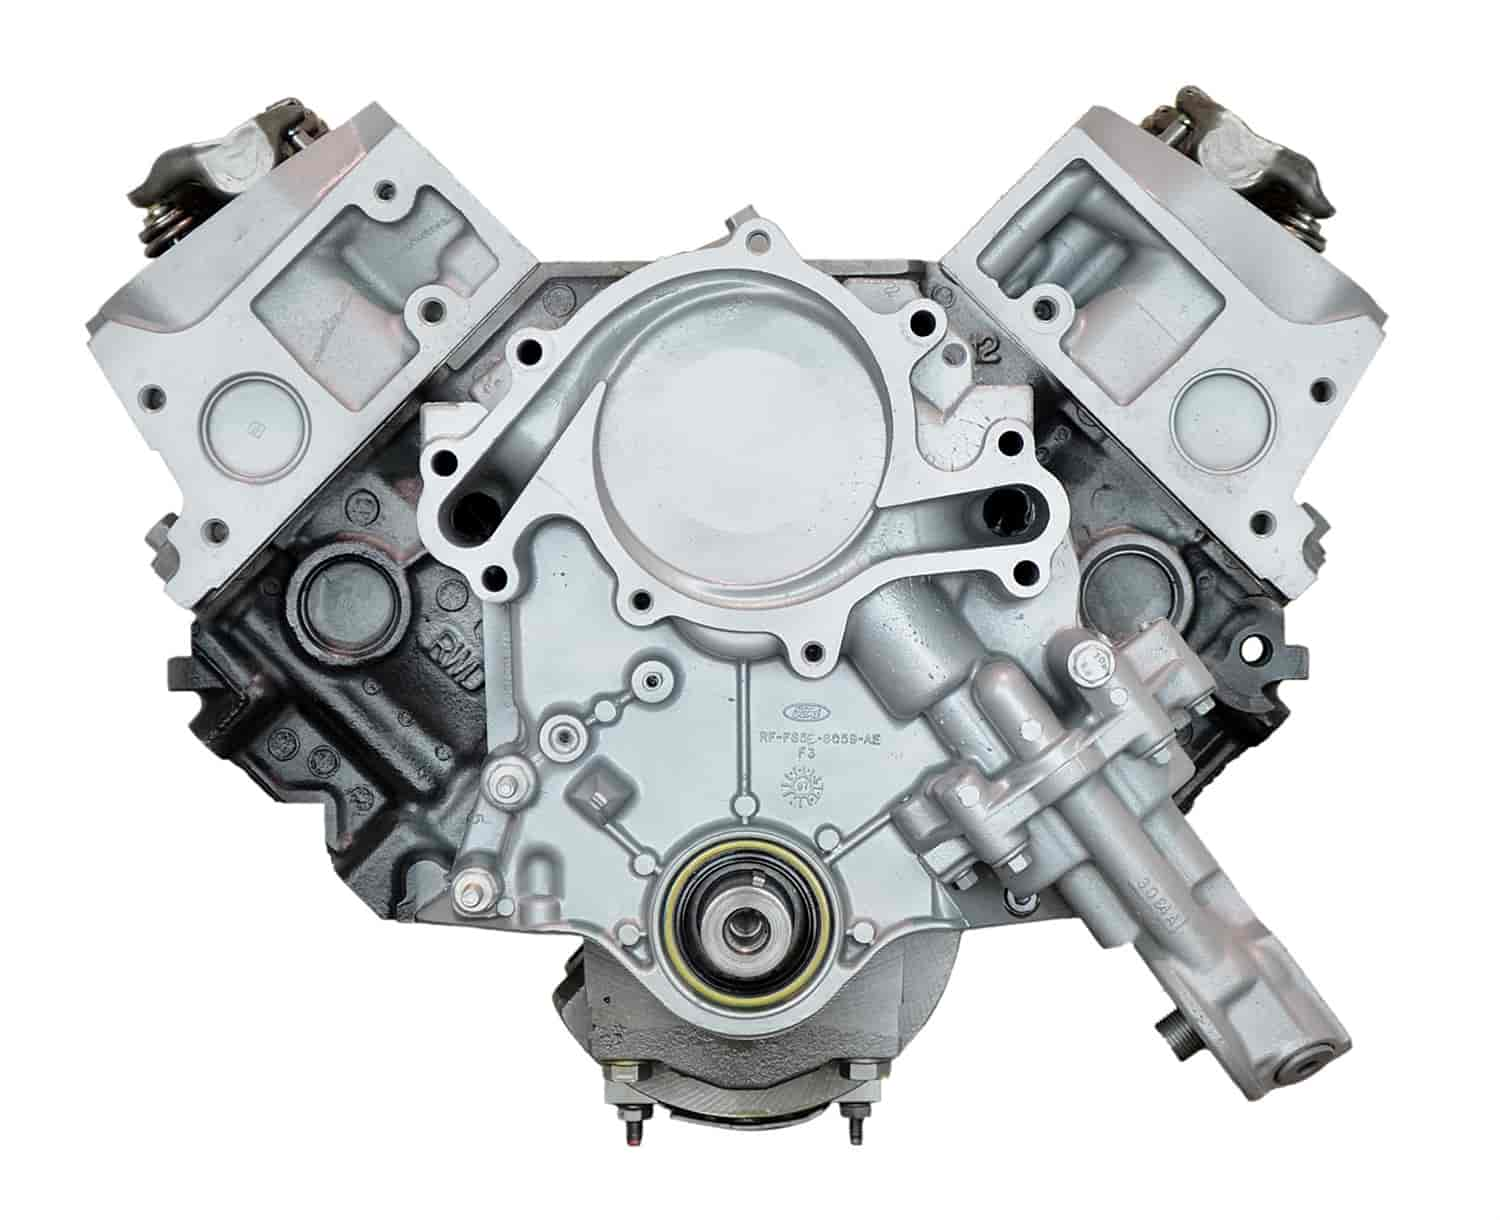 Atk Engines Dfzr  Remanufactured Crate Engine For 2000